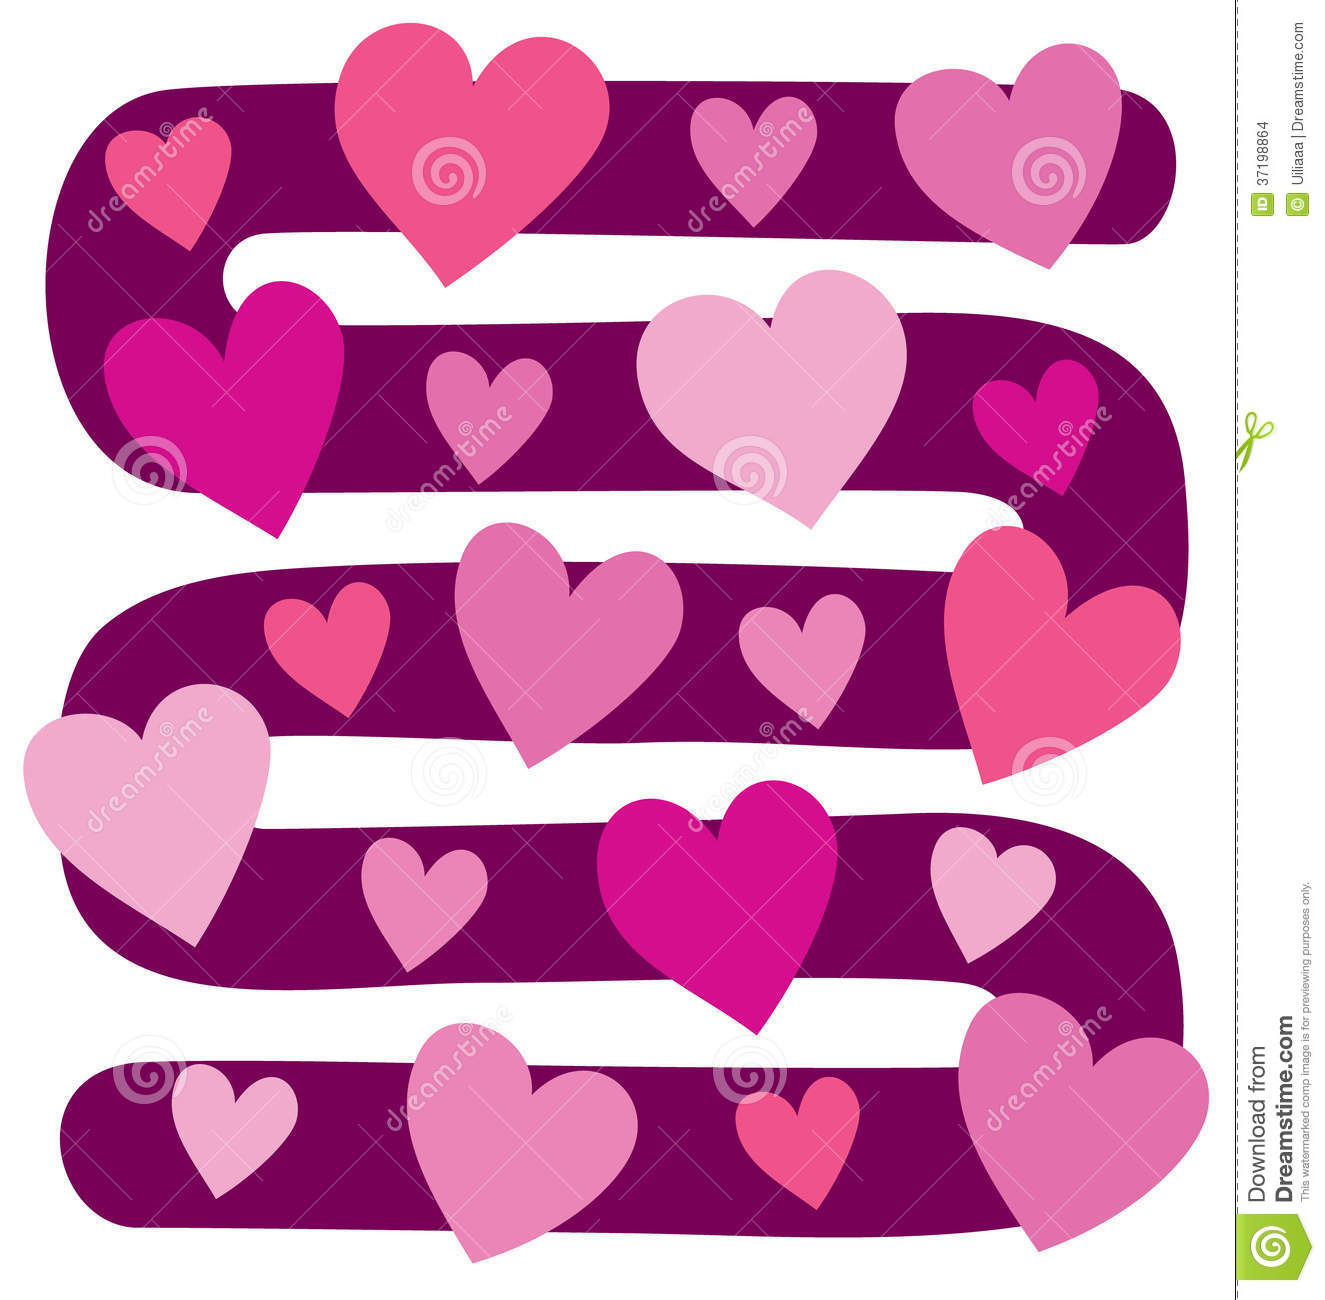 Game of hearts clipart jpg library library Vector Illustration Of Board Game With Hearts Stock Images - Image ... jpg library library